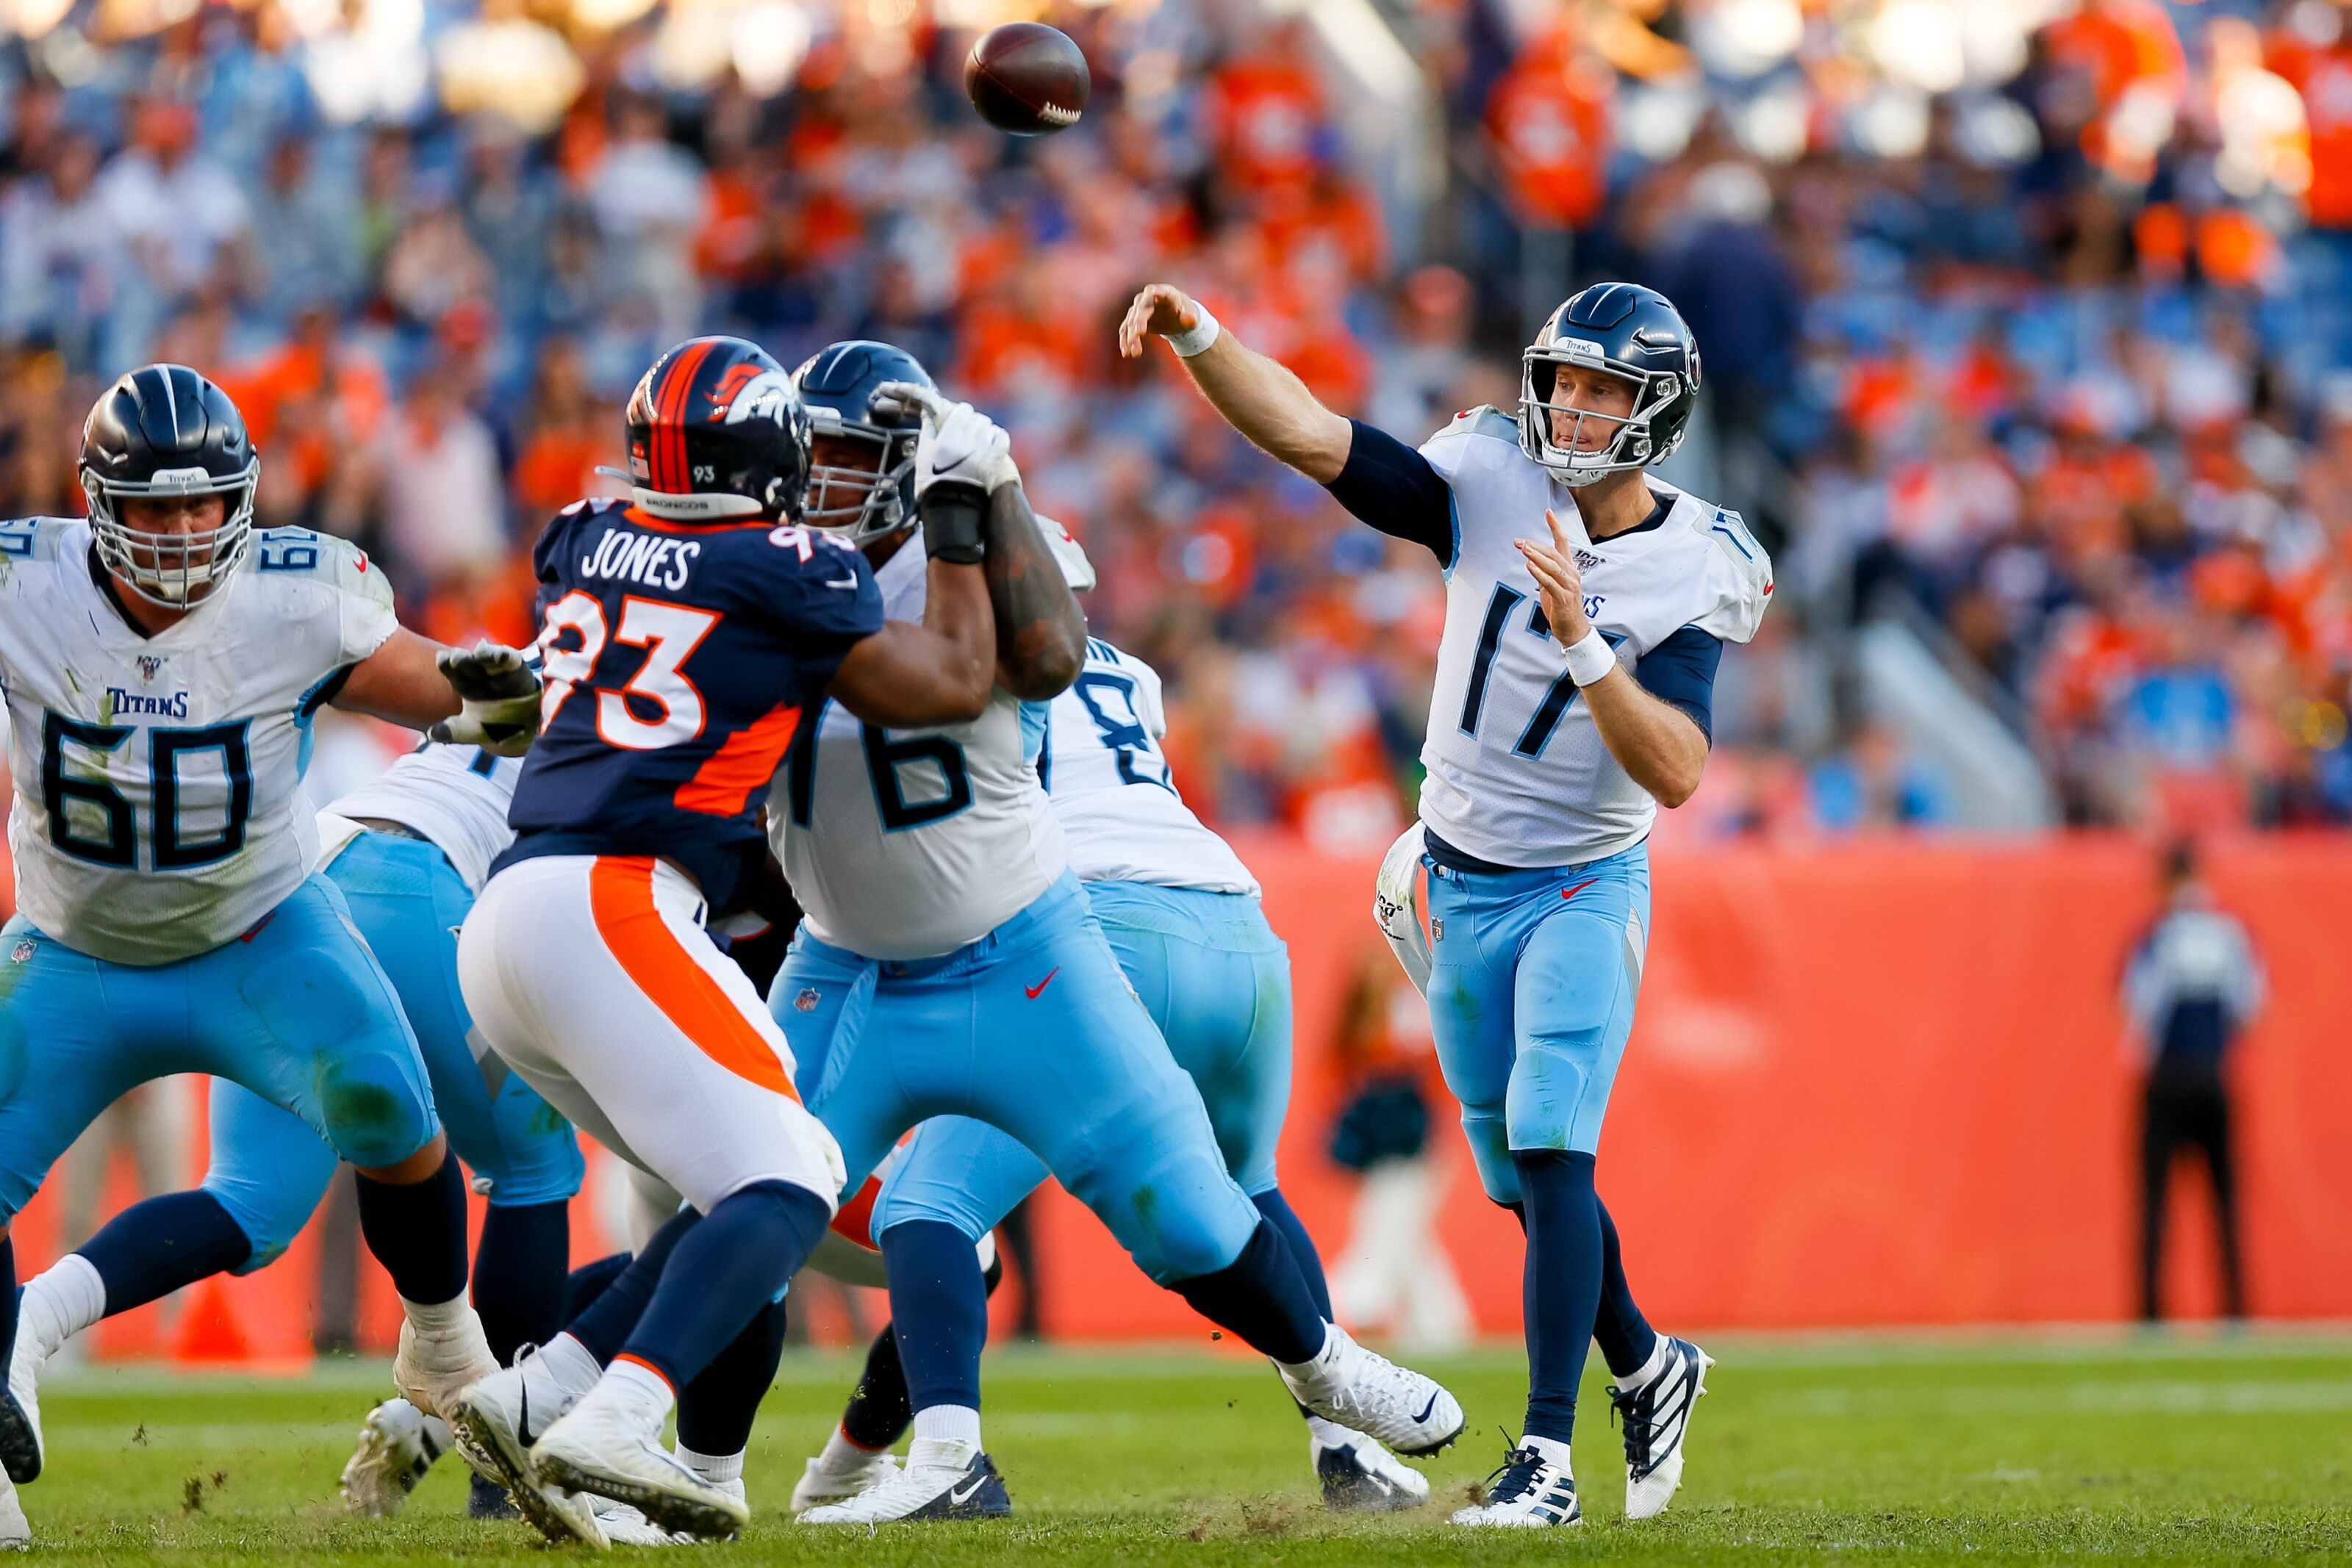 Tennessee Titans: What we learned from Week 6 loss to Broncos